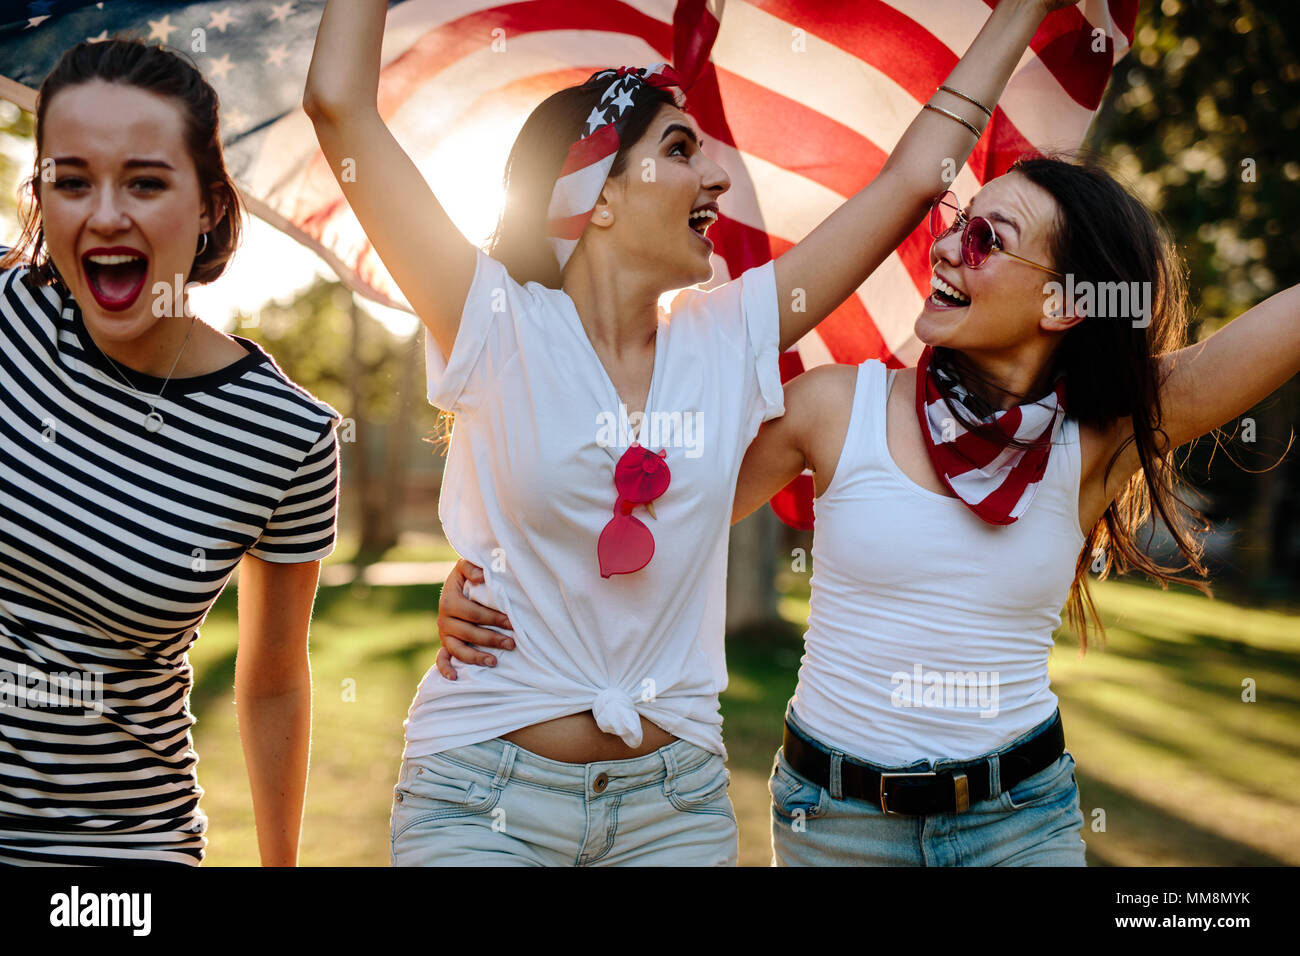 Three young female friends with American flag having fun in the park. Smiling group of women celebrating 4th of july outdoors. - Stock Image